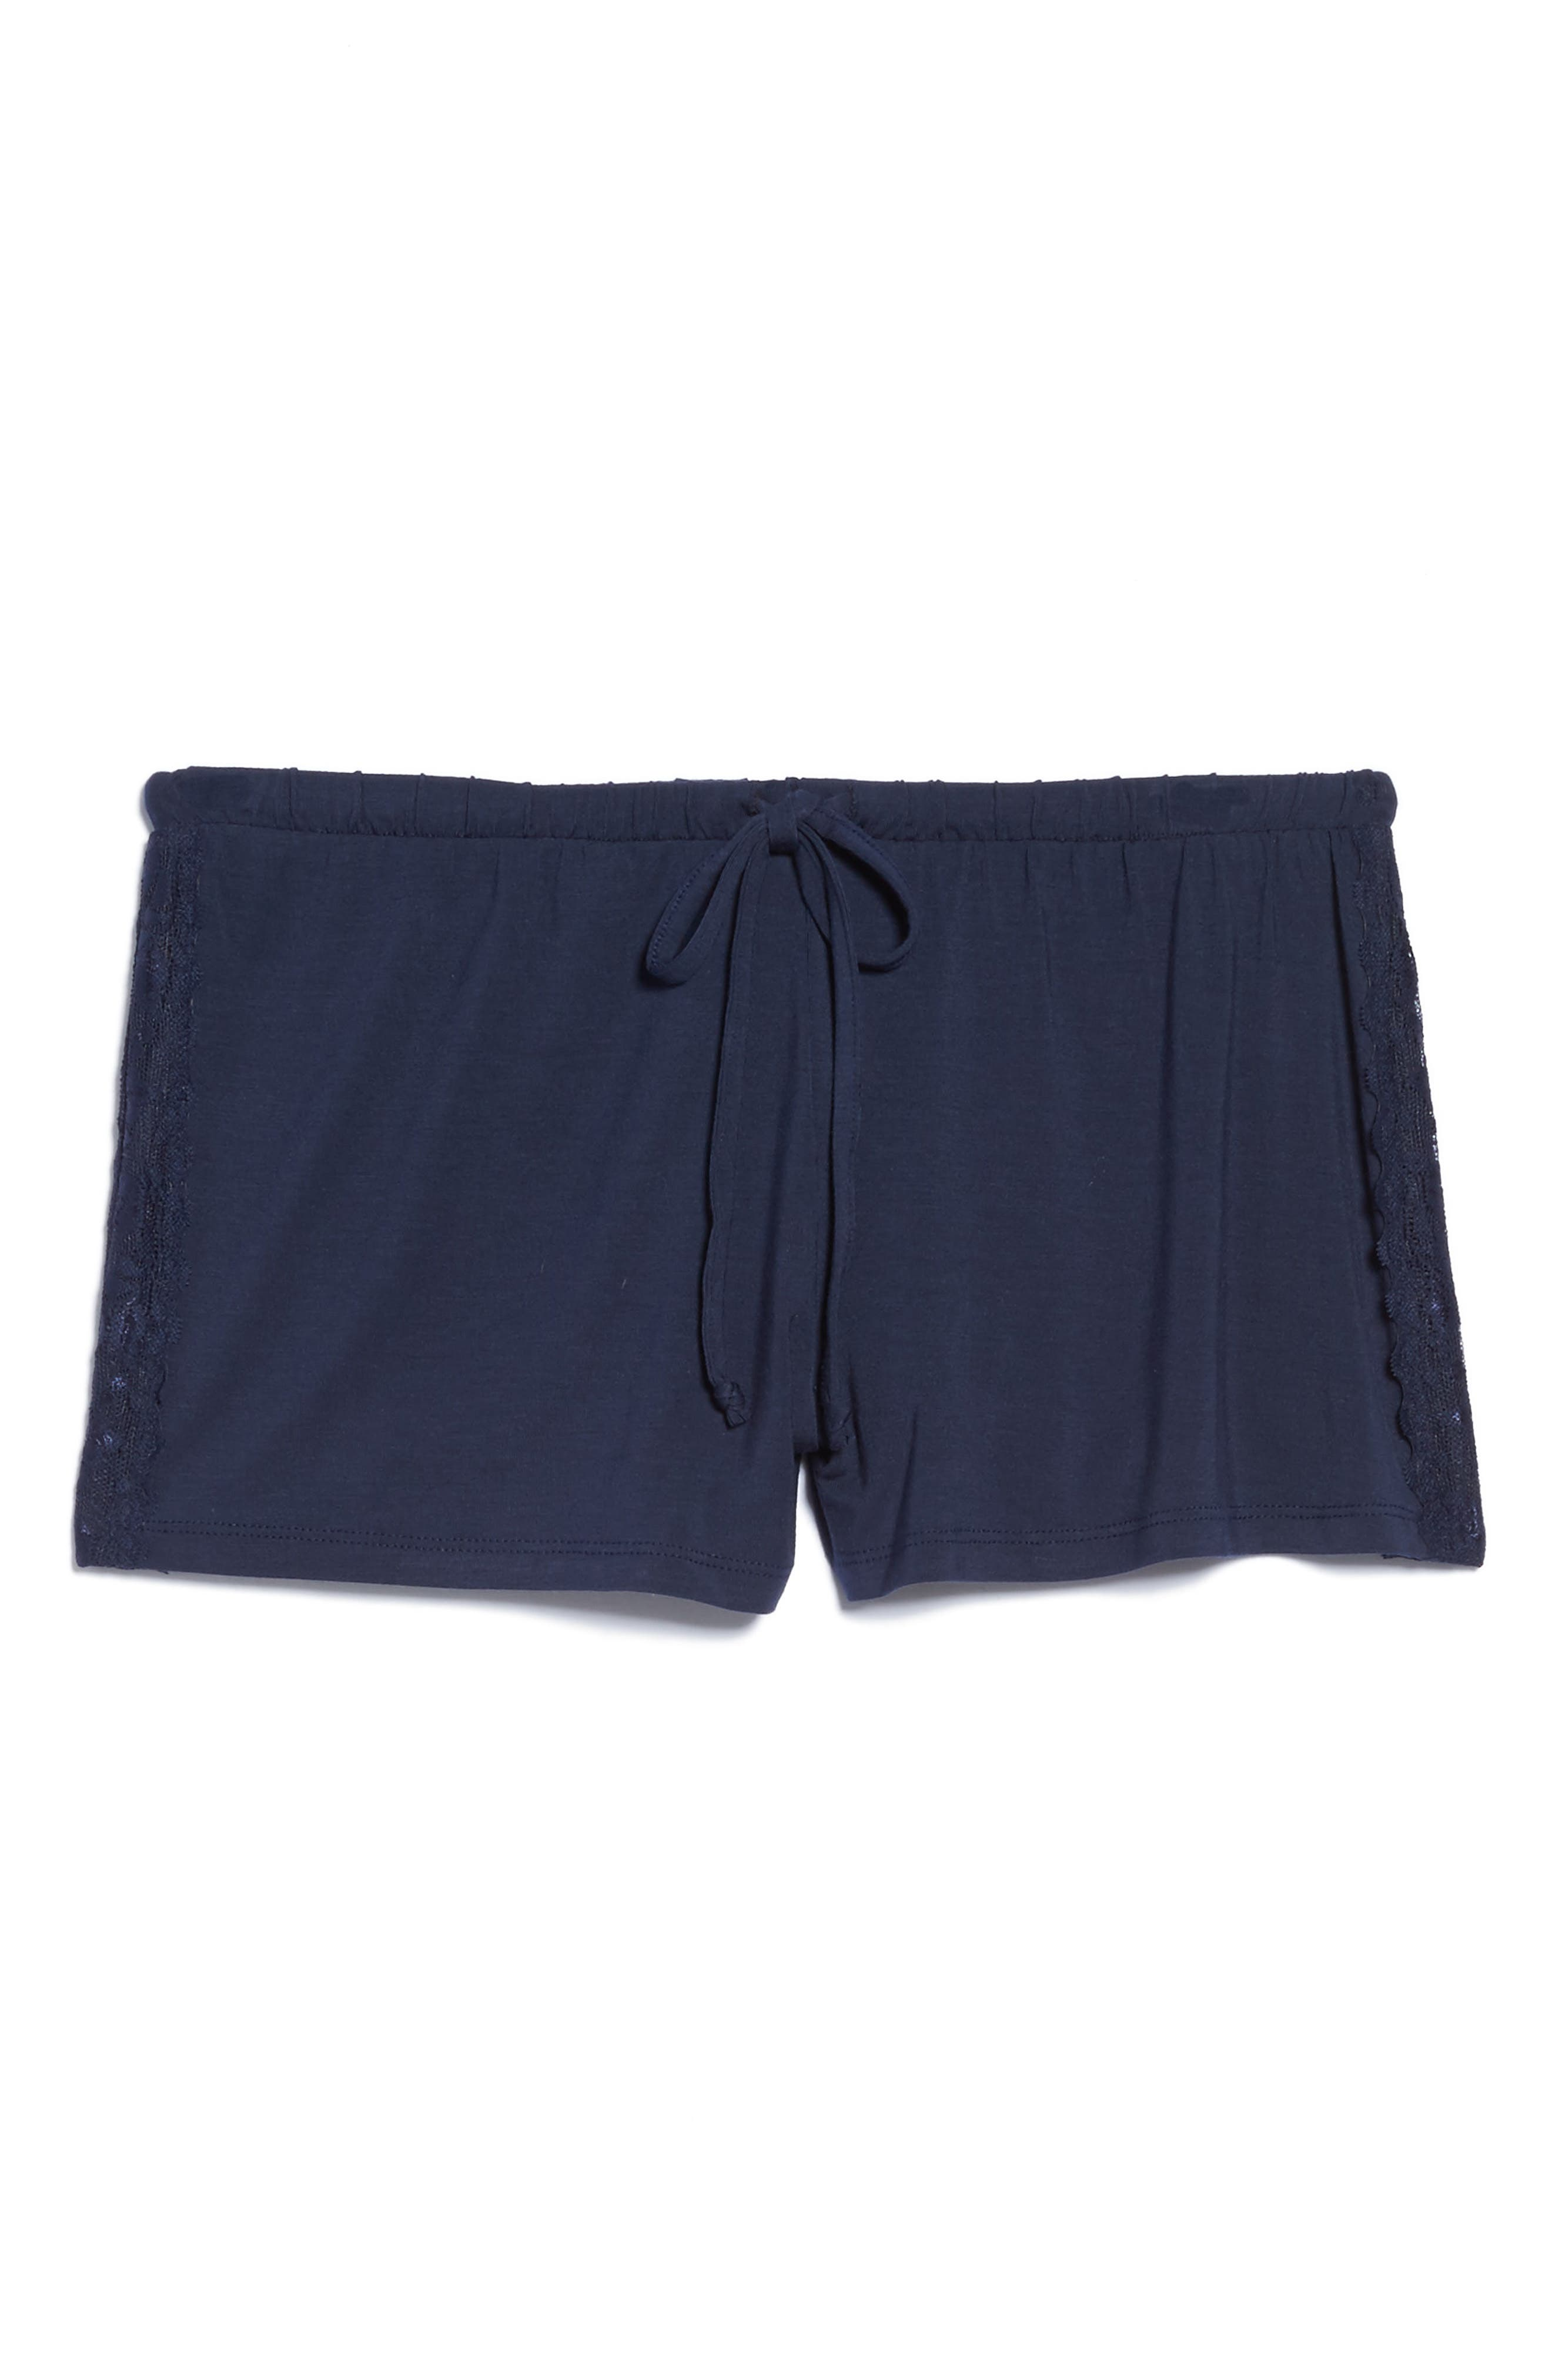 Lounge Shorts,                             Alternate thumbnail 4, color,                             Navy